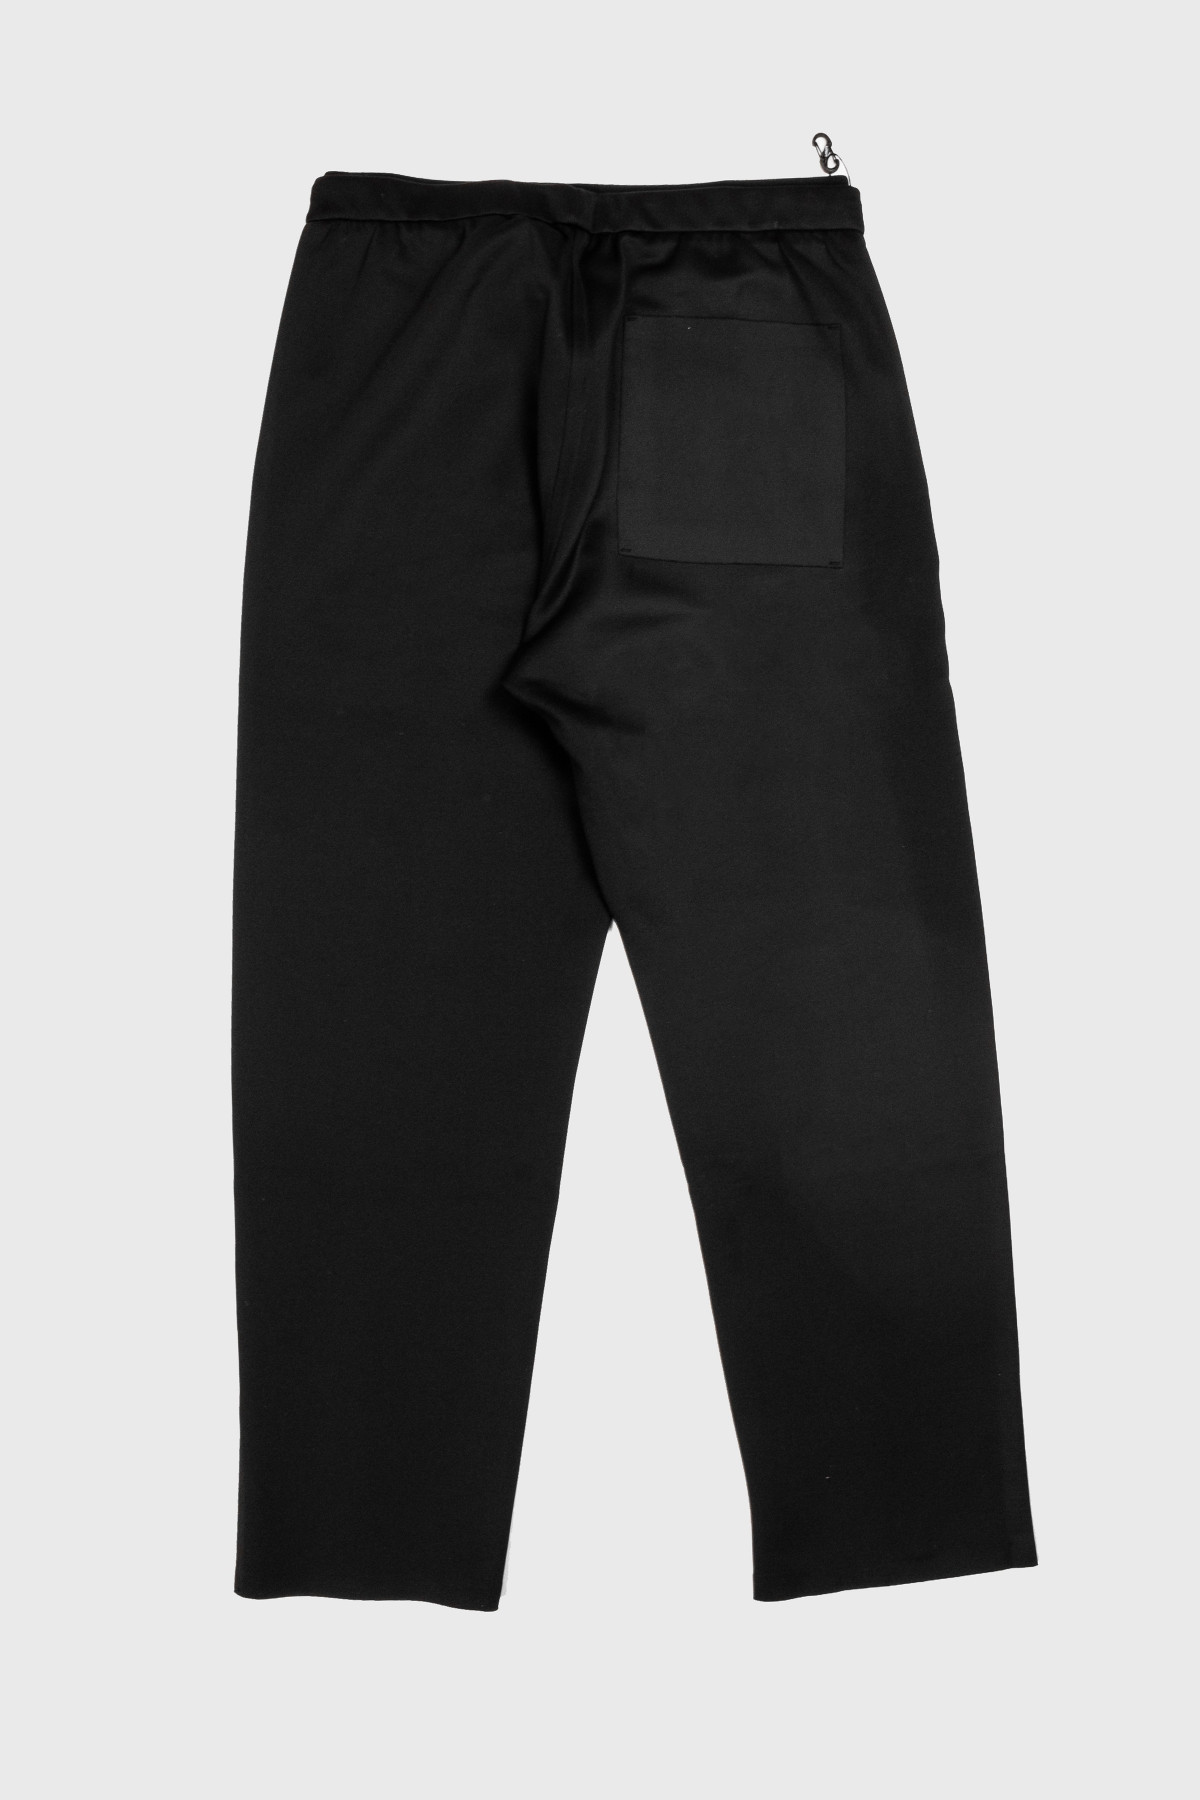 satisfy - spacer post run pants - Black